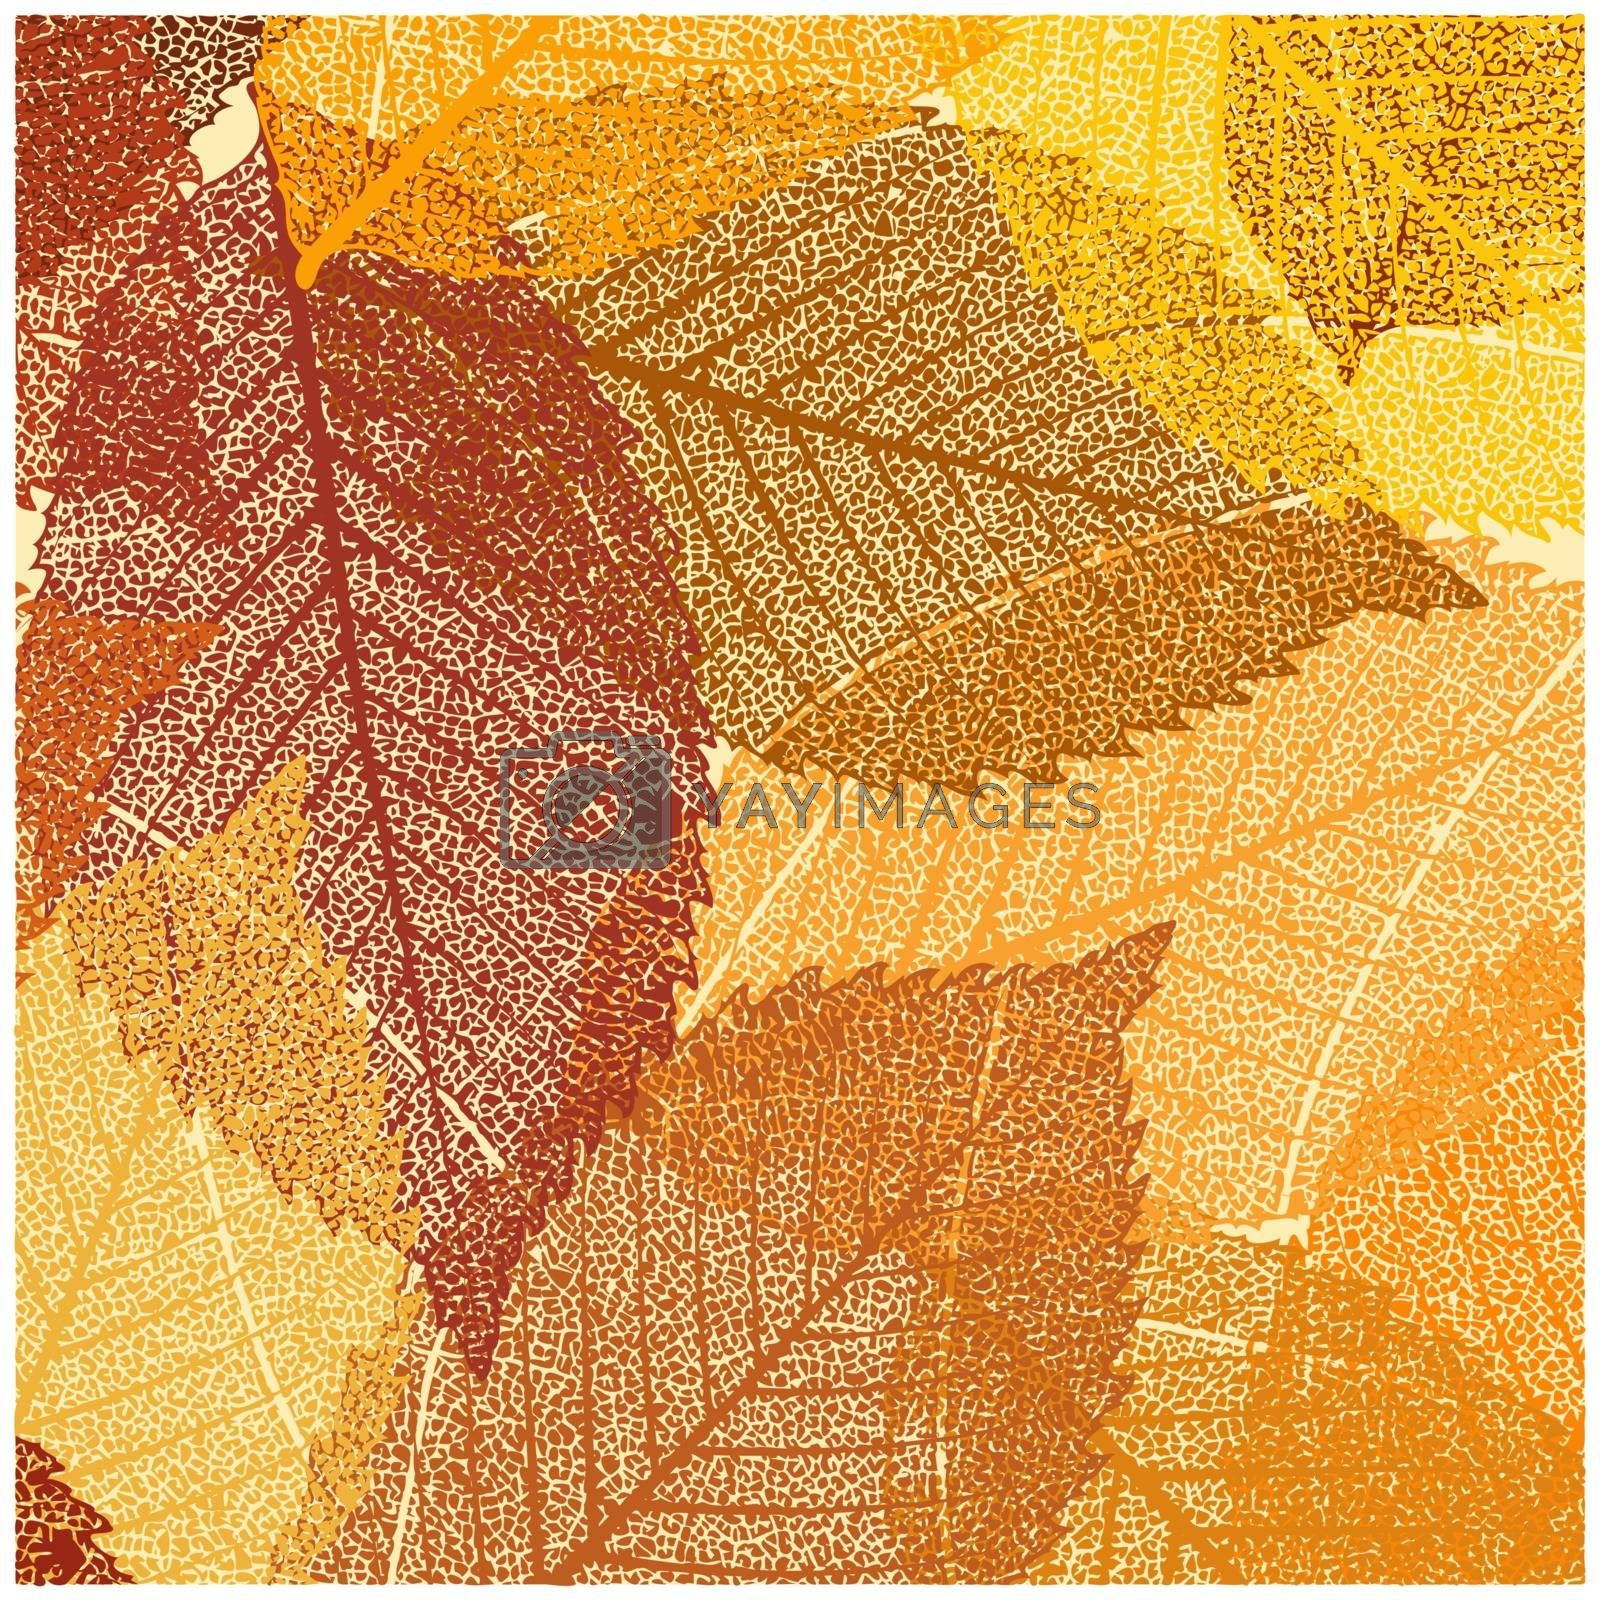 Dry autumn leaves template. EPS 8 vector file included